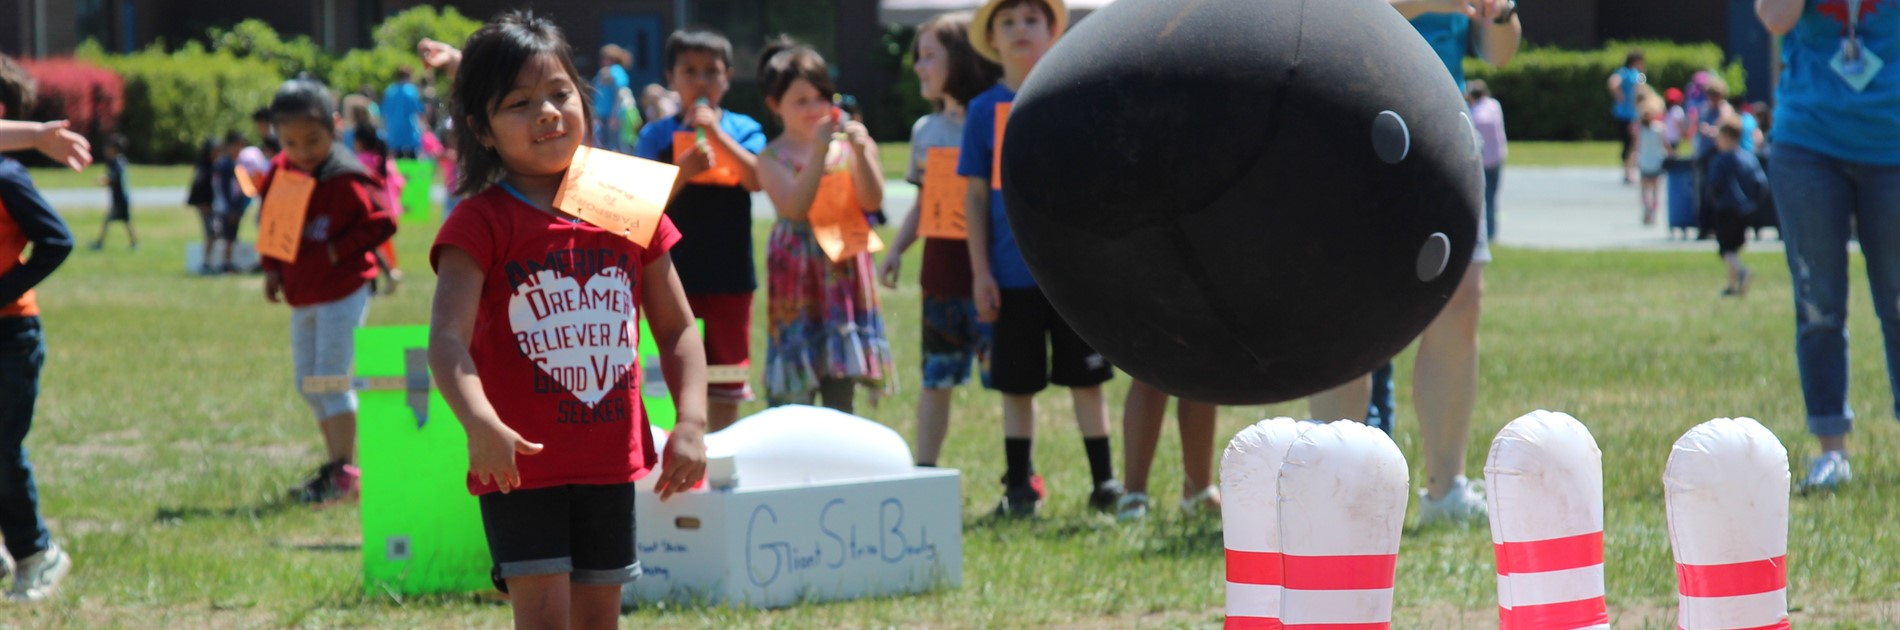 """bowling"" at field day"